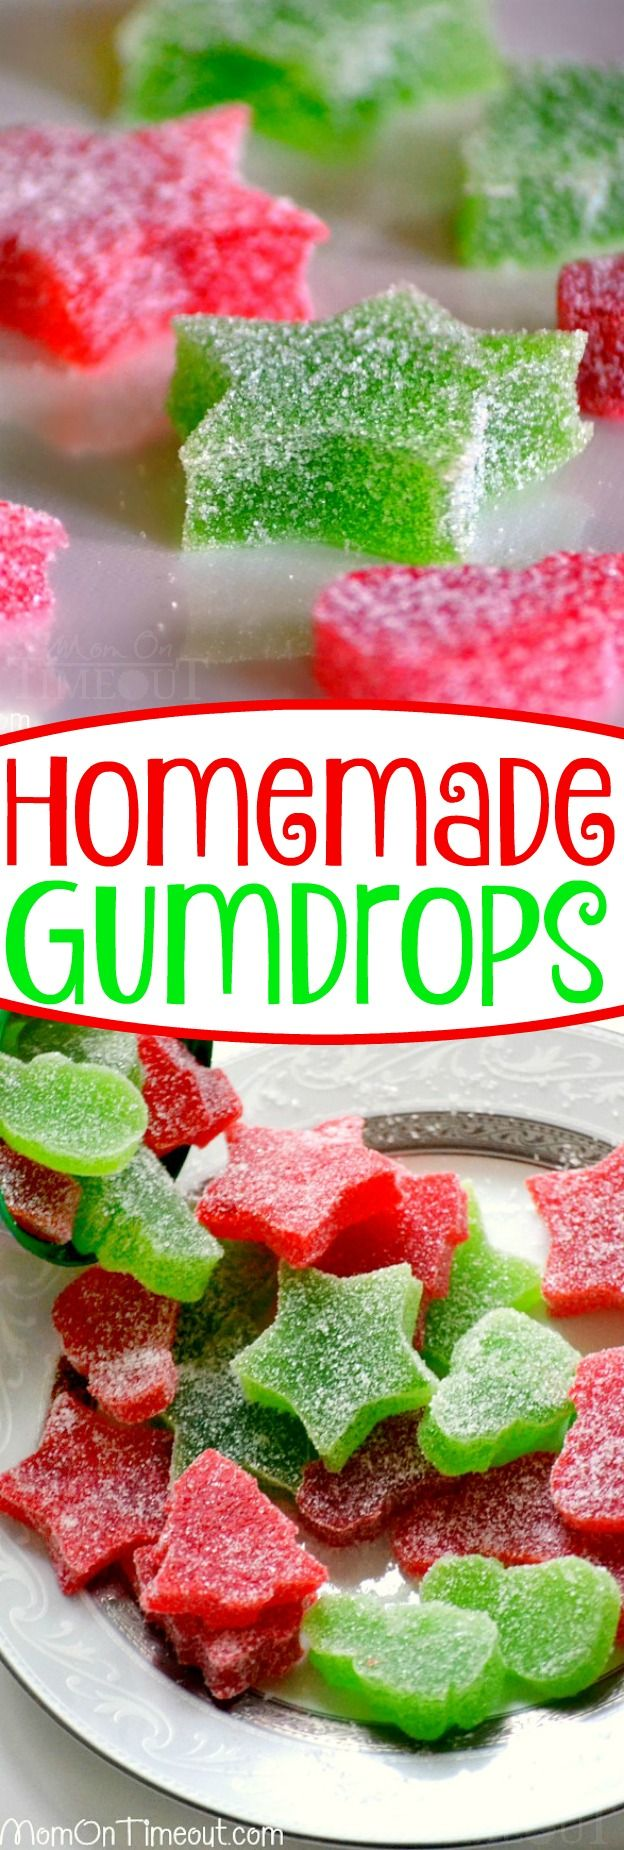 Homemade gumdrops recipe homemade sweet treats and treats for Homemade christmas goodies recipes